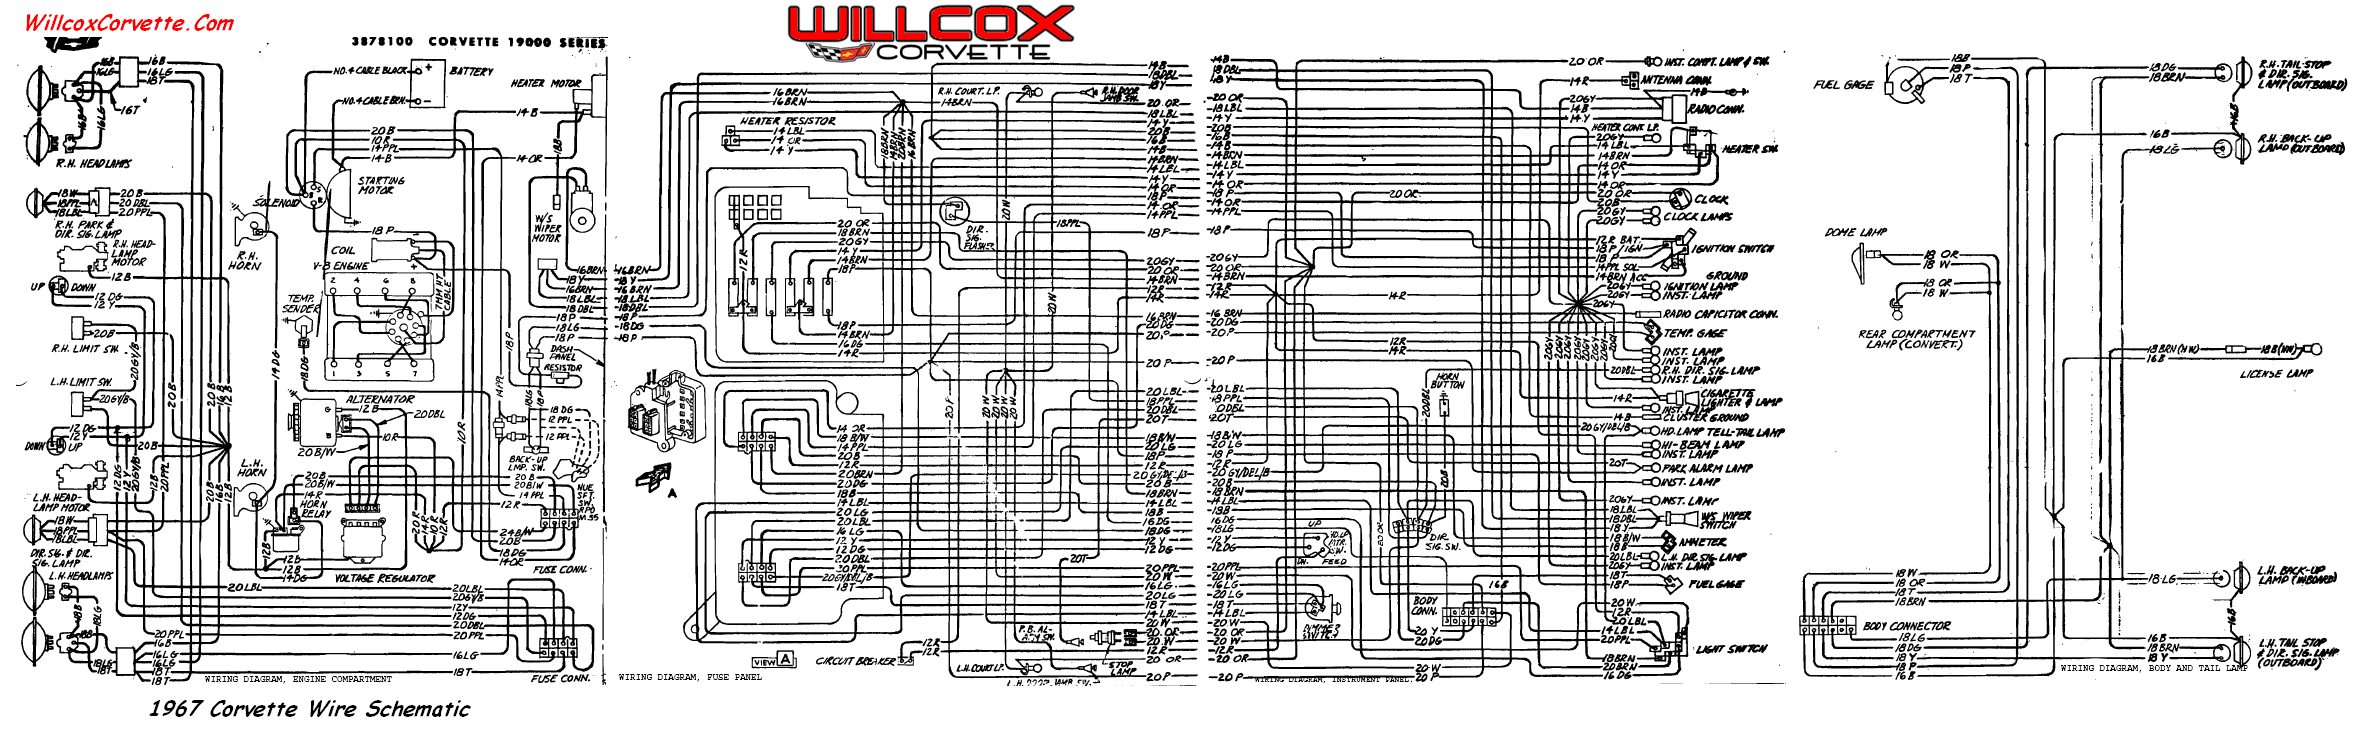 1981 Corvette Dash Wiring Diagram - Tools •